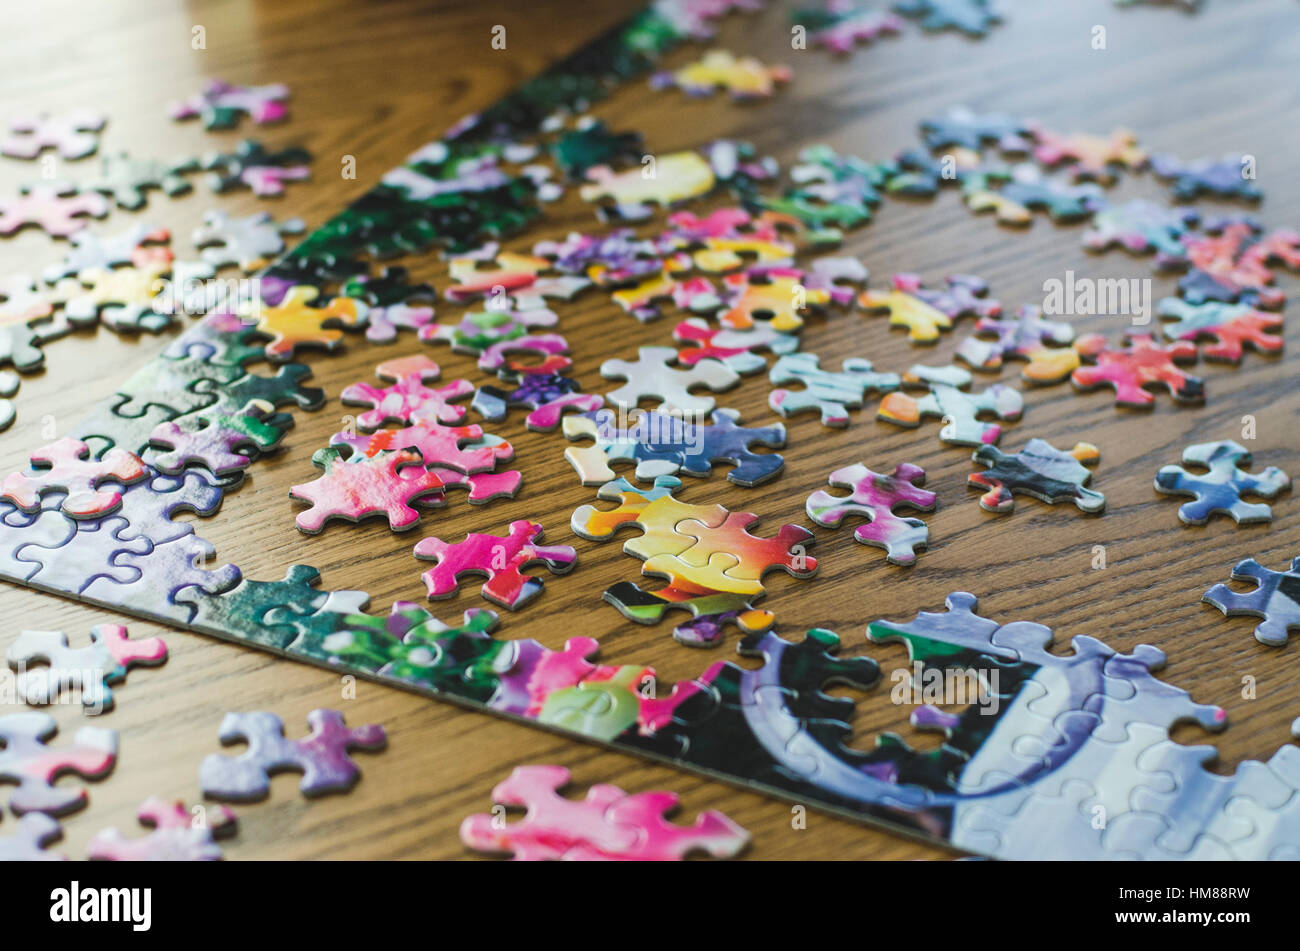 Jigsaw Puzzle and Pieces in Progress - Stock Image